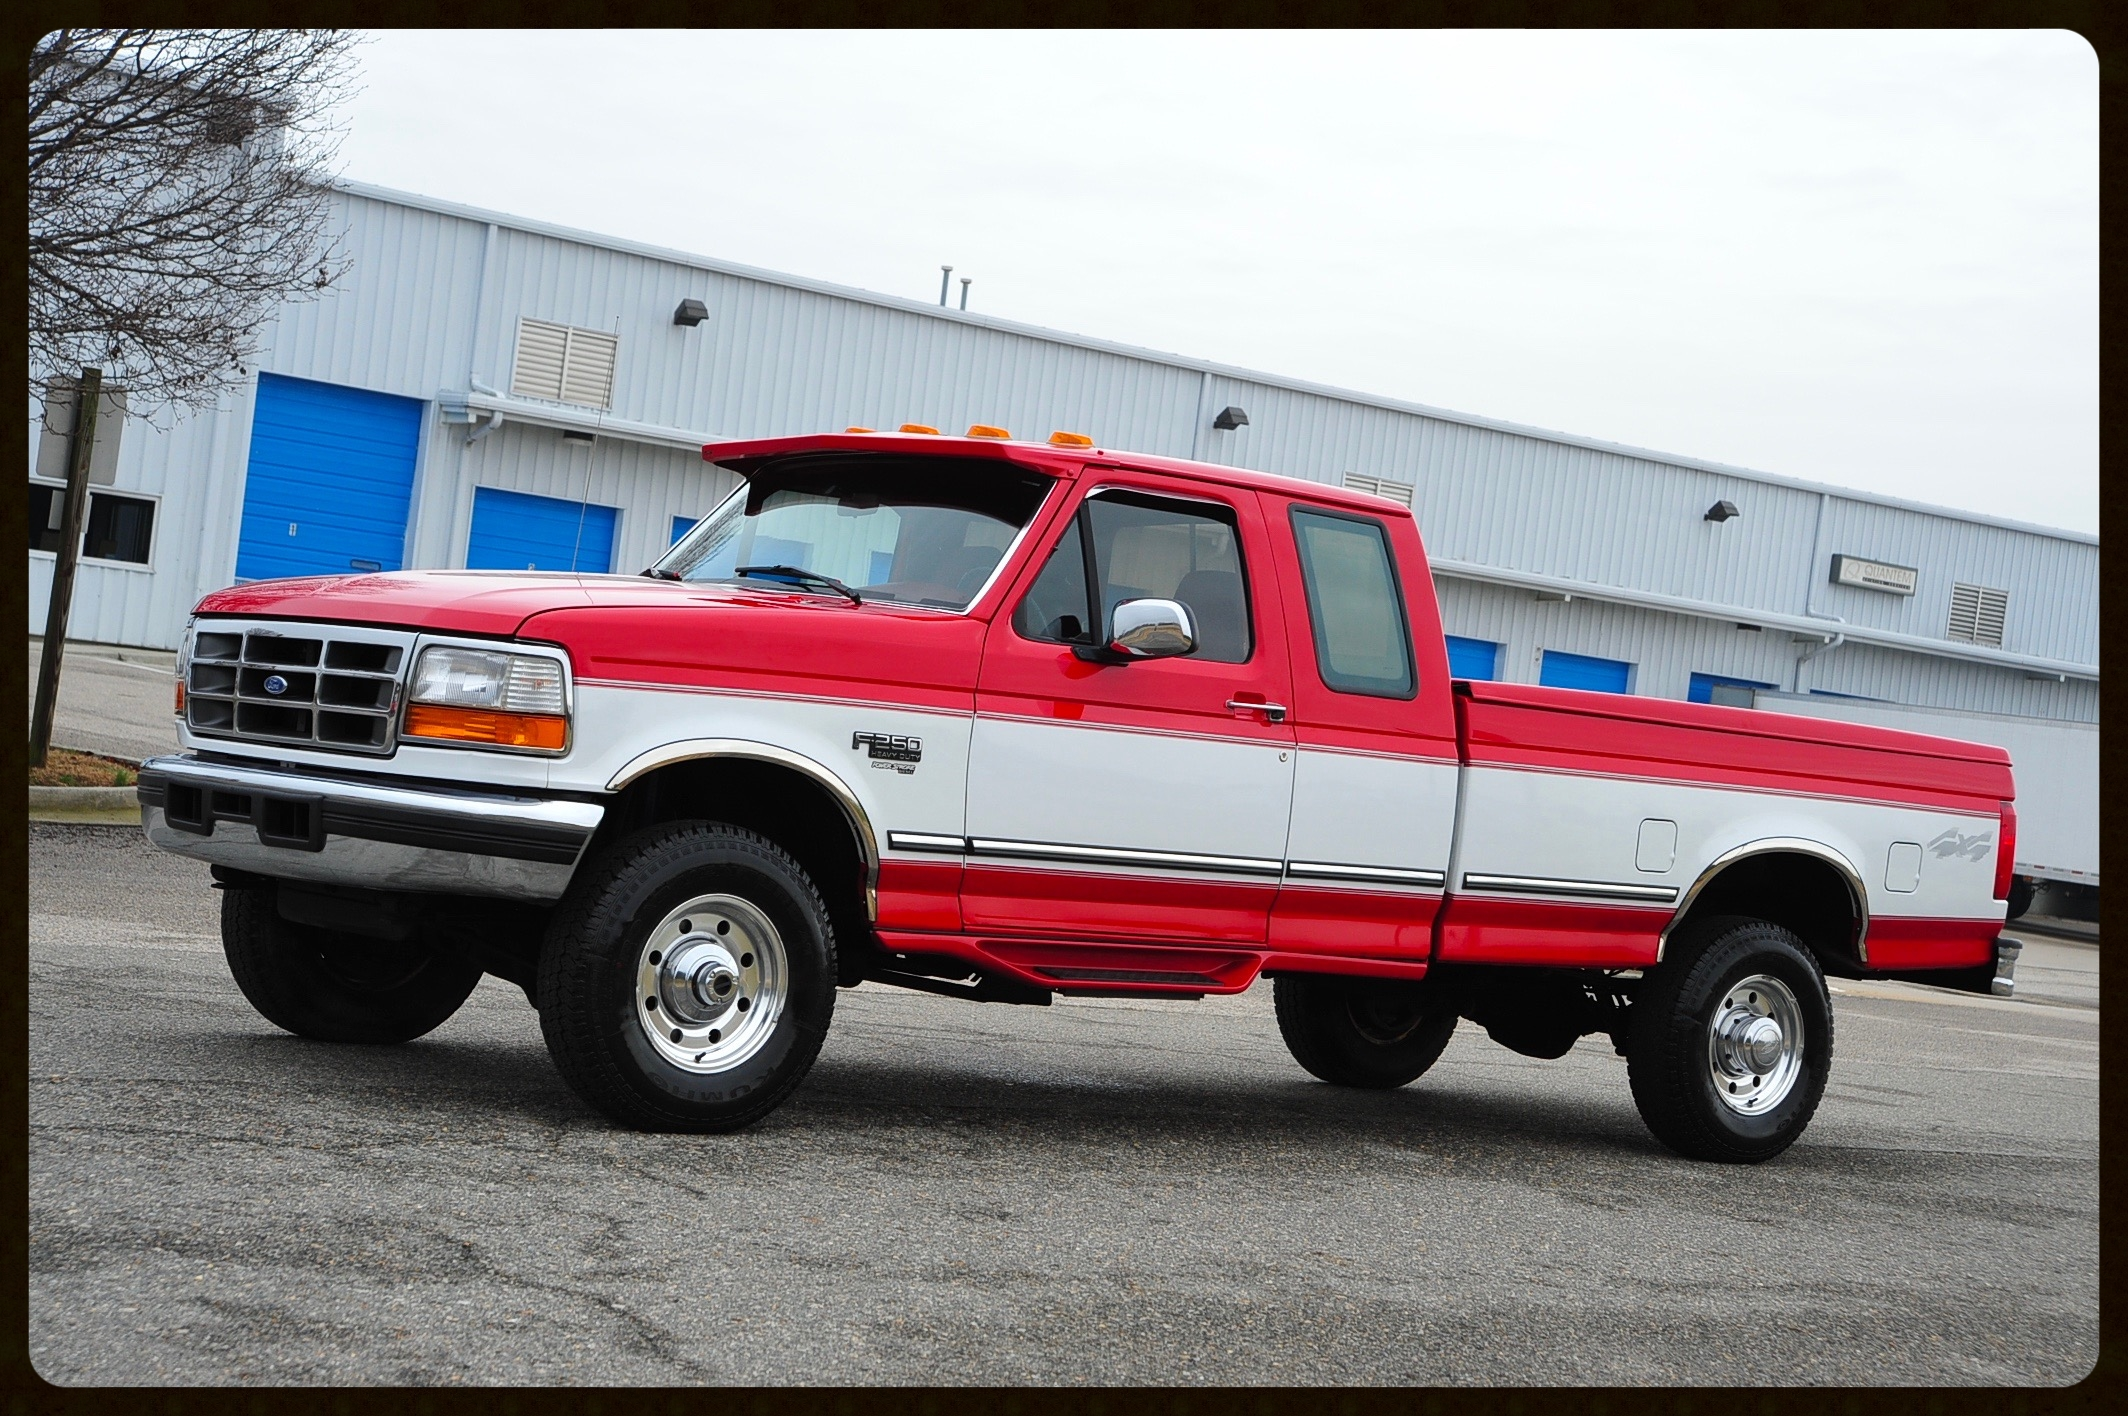 1996 F250.....7.3 Diesel....4x4....1 OWNER TRUCK WITH ONLY 52K ORIGINAL MILES...VERY RARE FIND...ALL ORIGINAL TRUCK